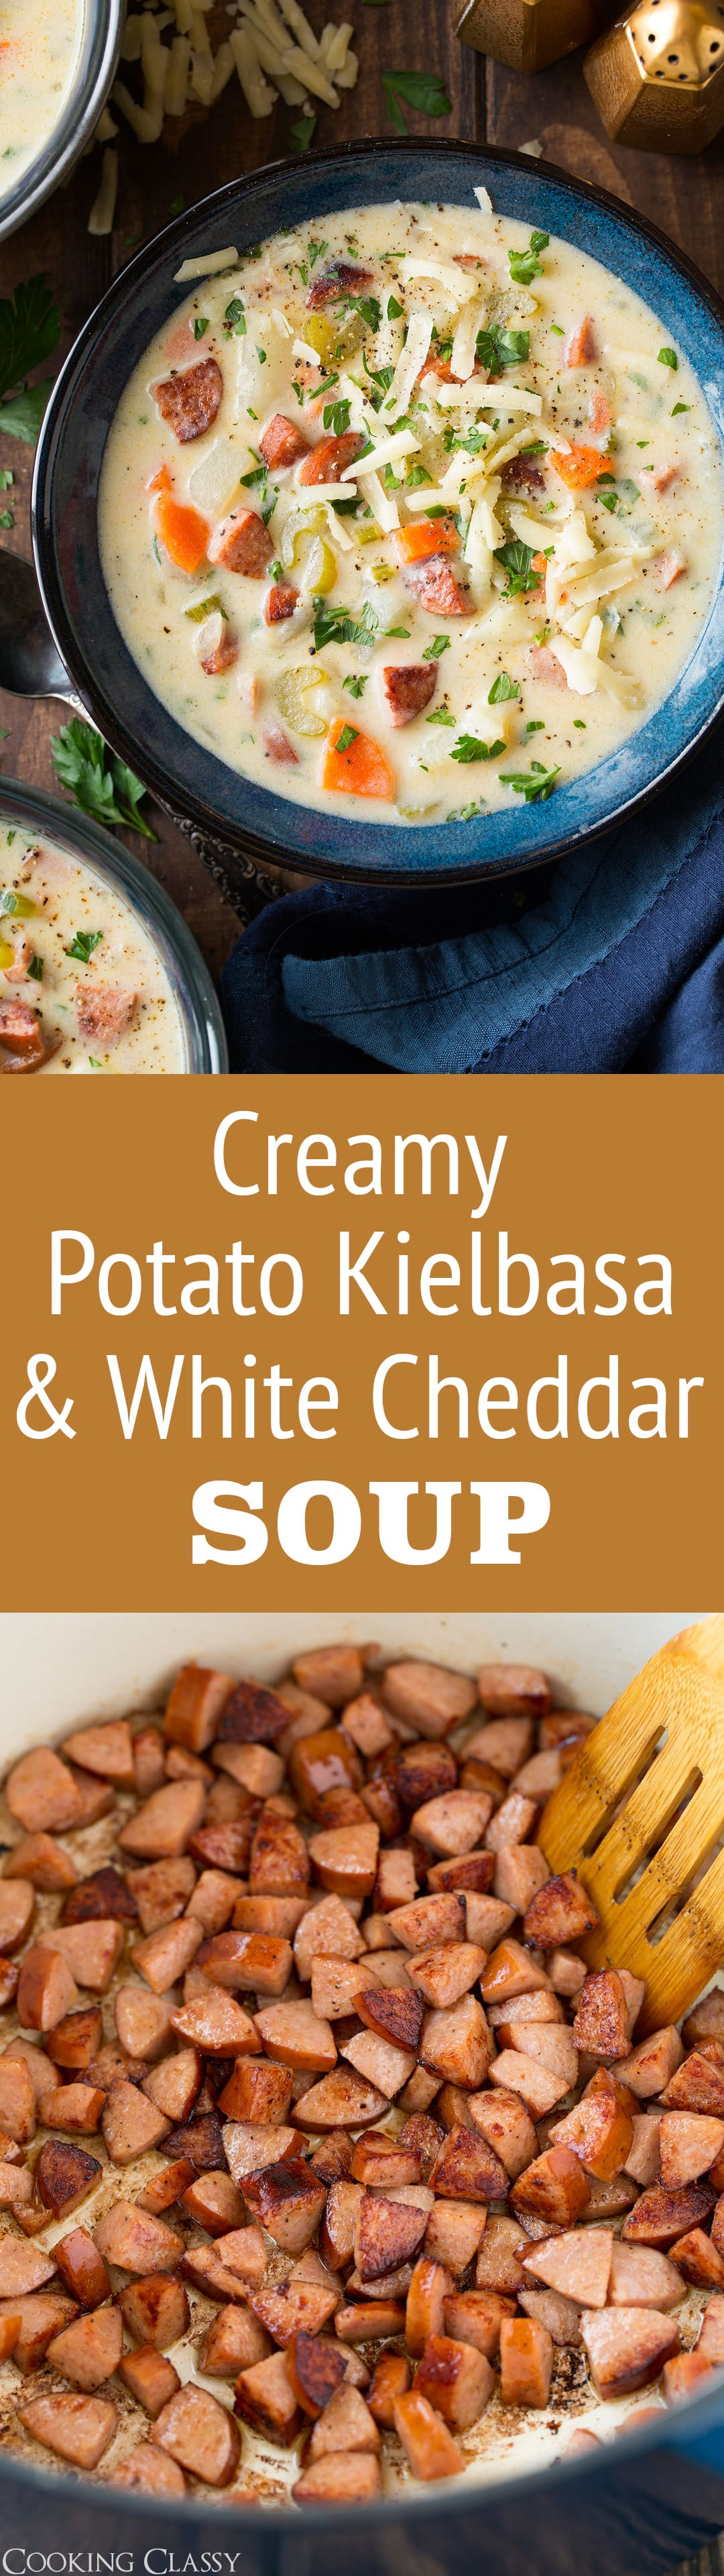 Creamy Potato Kielbasa and White Cheddar Soup - An incredibly filling and perfectly comforting soup for a chilly day! It has a delicious flavor blend of sausage, white cheddar and potatoes and chances are the whole family will love it! #soup #sausage #potatosoup #dinner #comfortfood